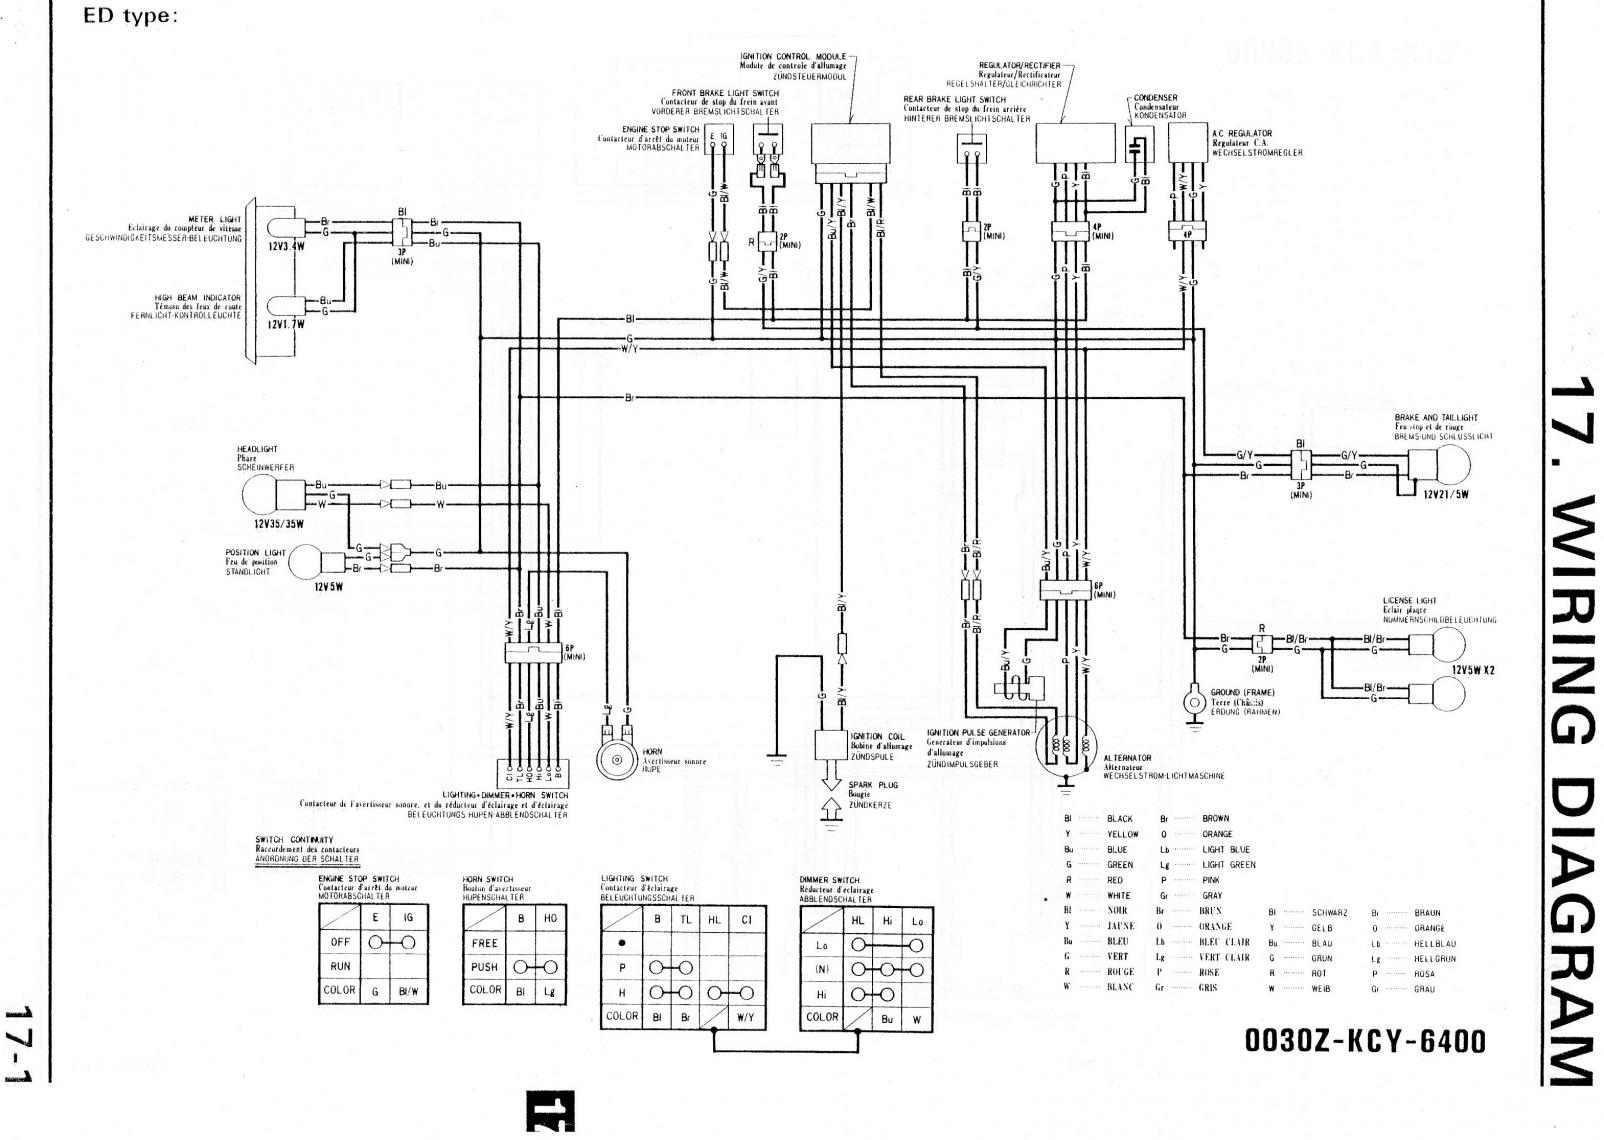 Fuse Box Diagram For Saturn L300 Fuse Free Engine Image For User Manual Download